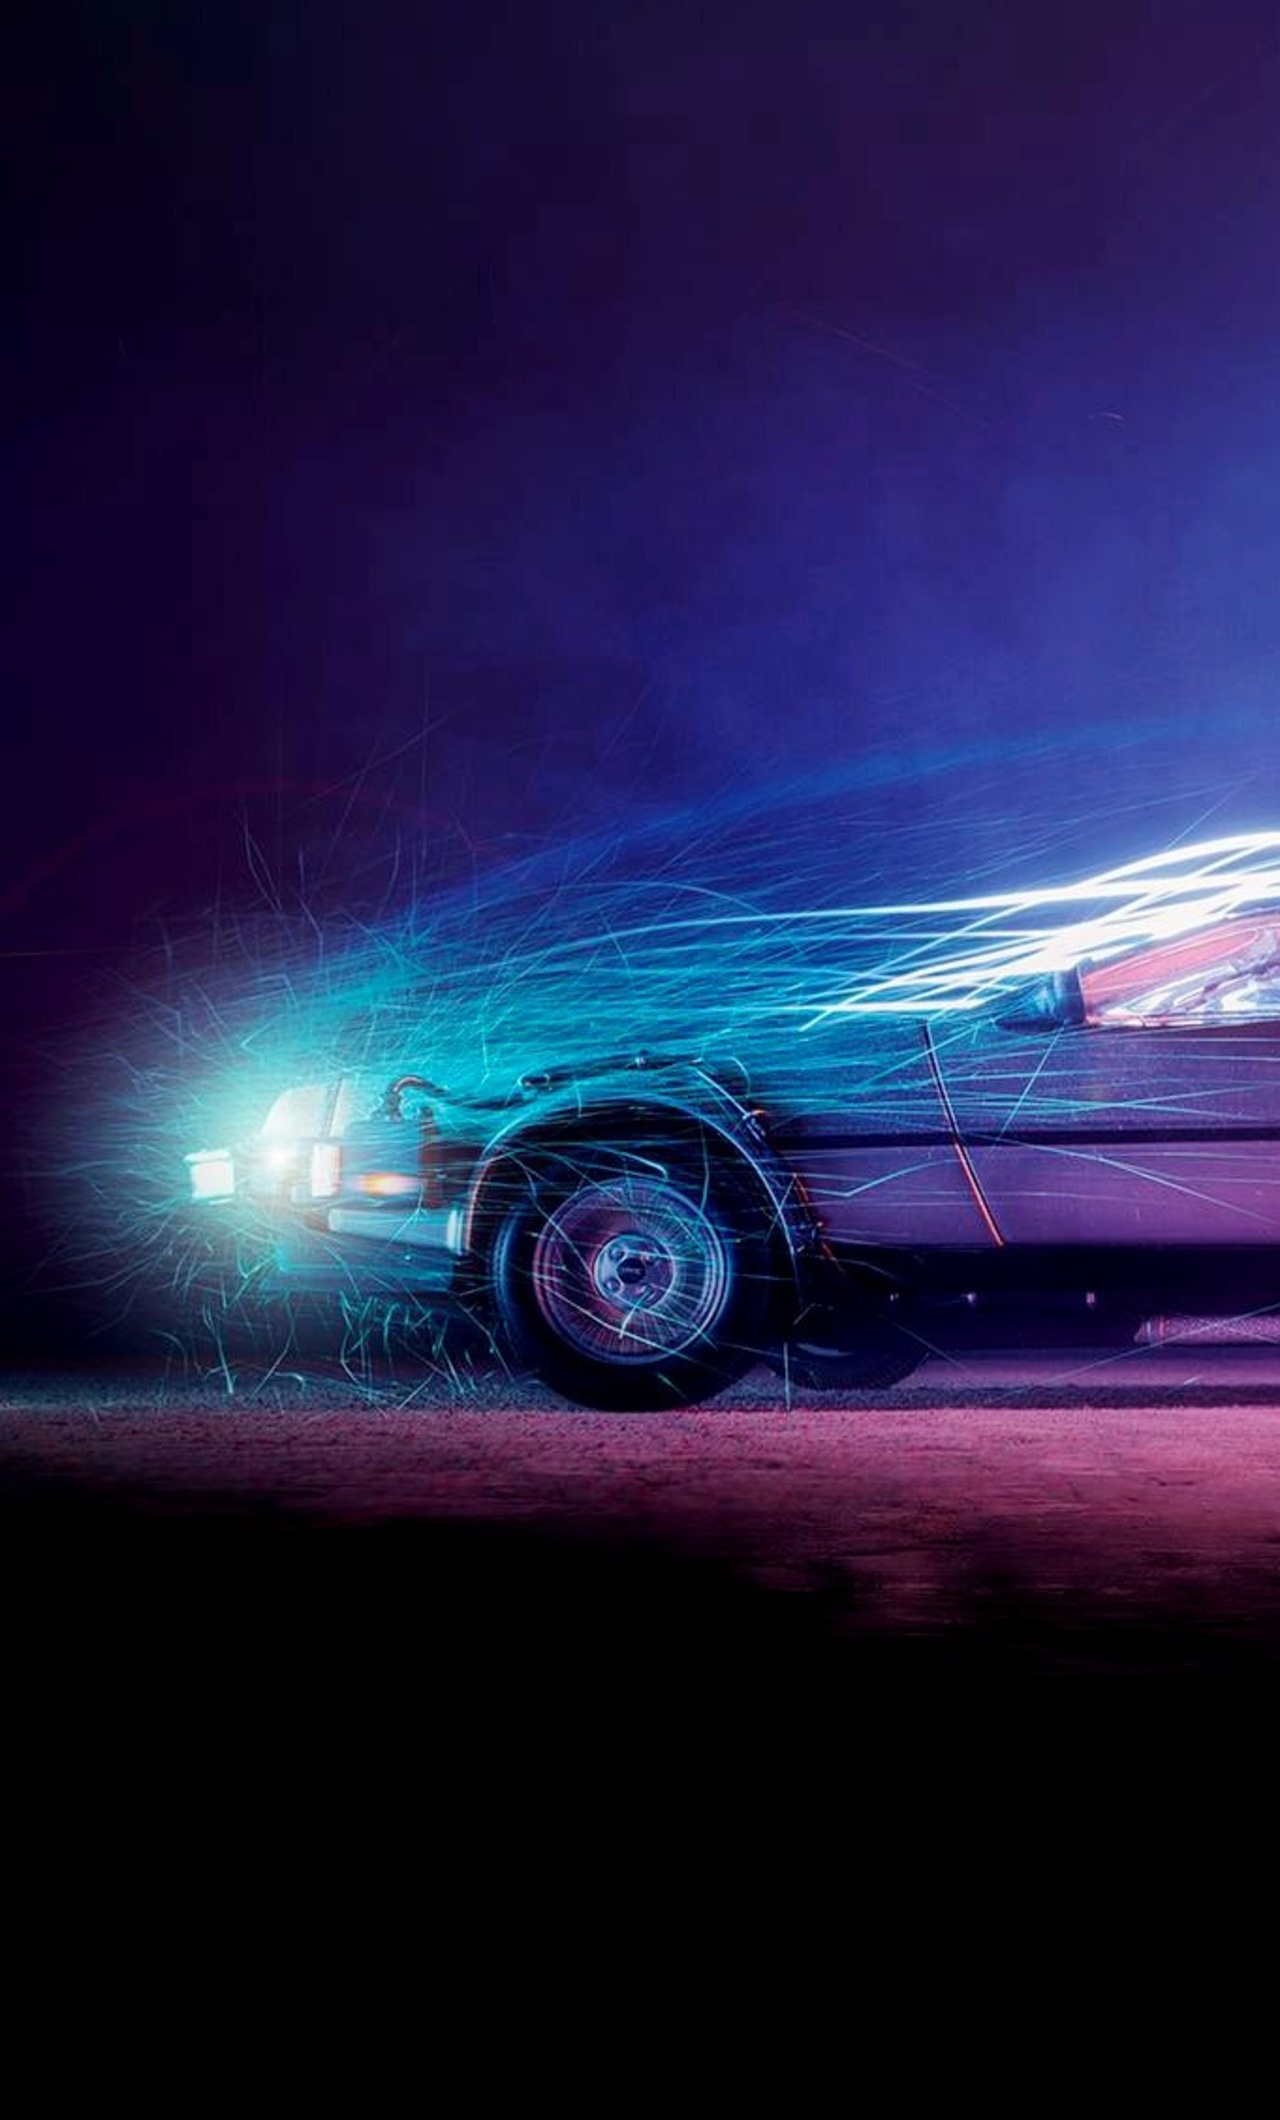 wallpaper for iphone 1280x2120 car lights back to the future iphone 6 hd 1104